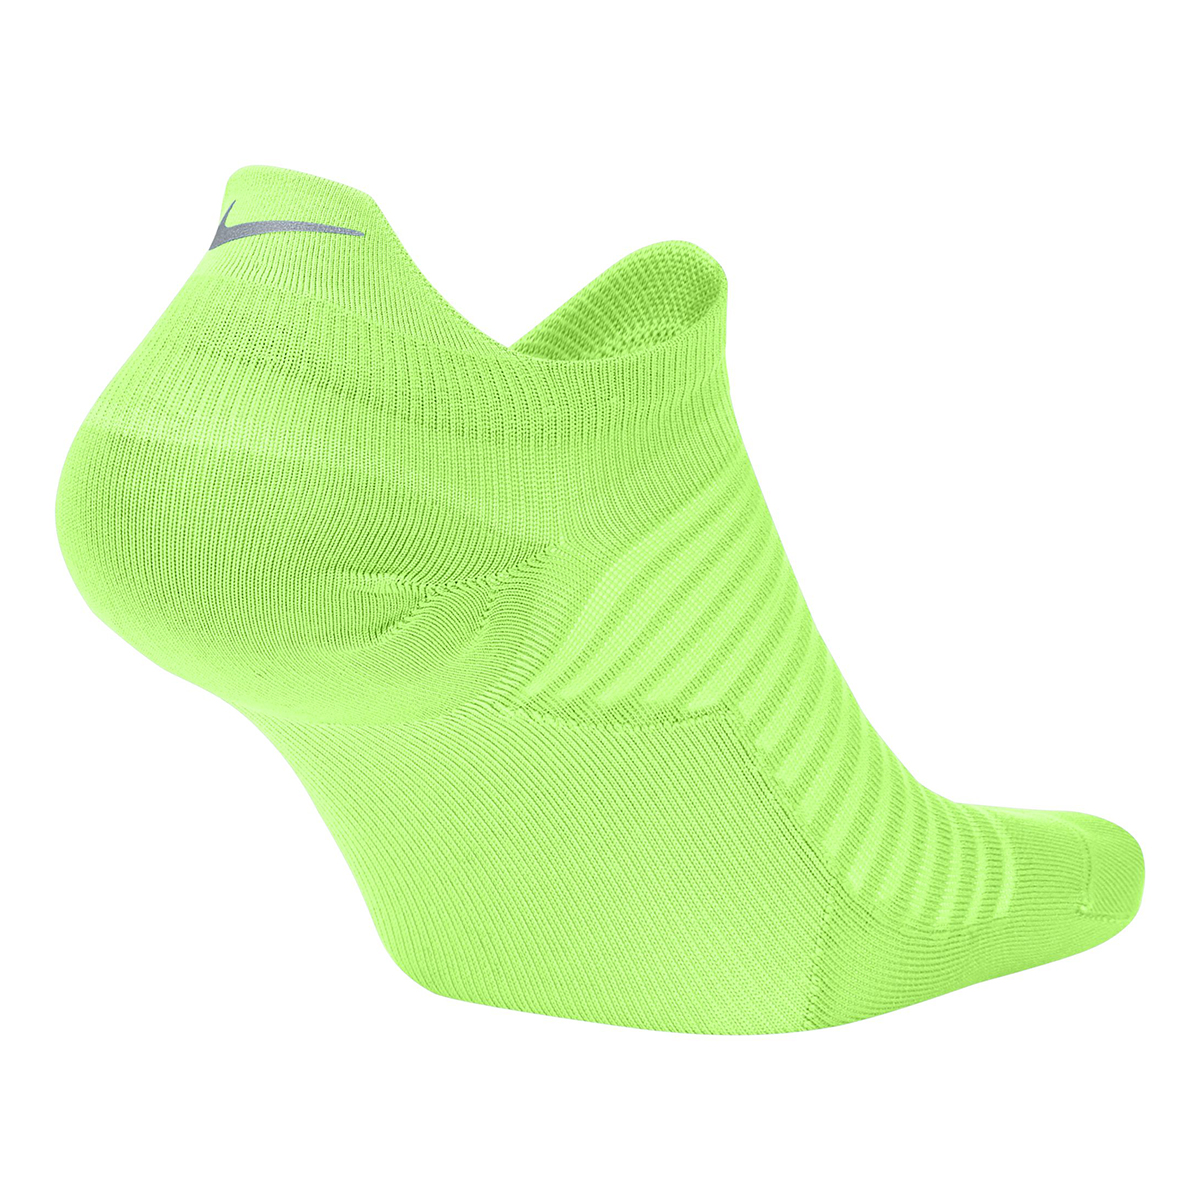 Nike Spark Lightweight No-Show Running Socks - Color: Lime Blast - Size: 4/5.5, Lime Blast, large, image 2